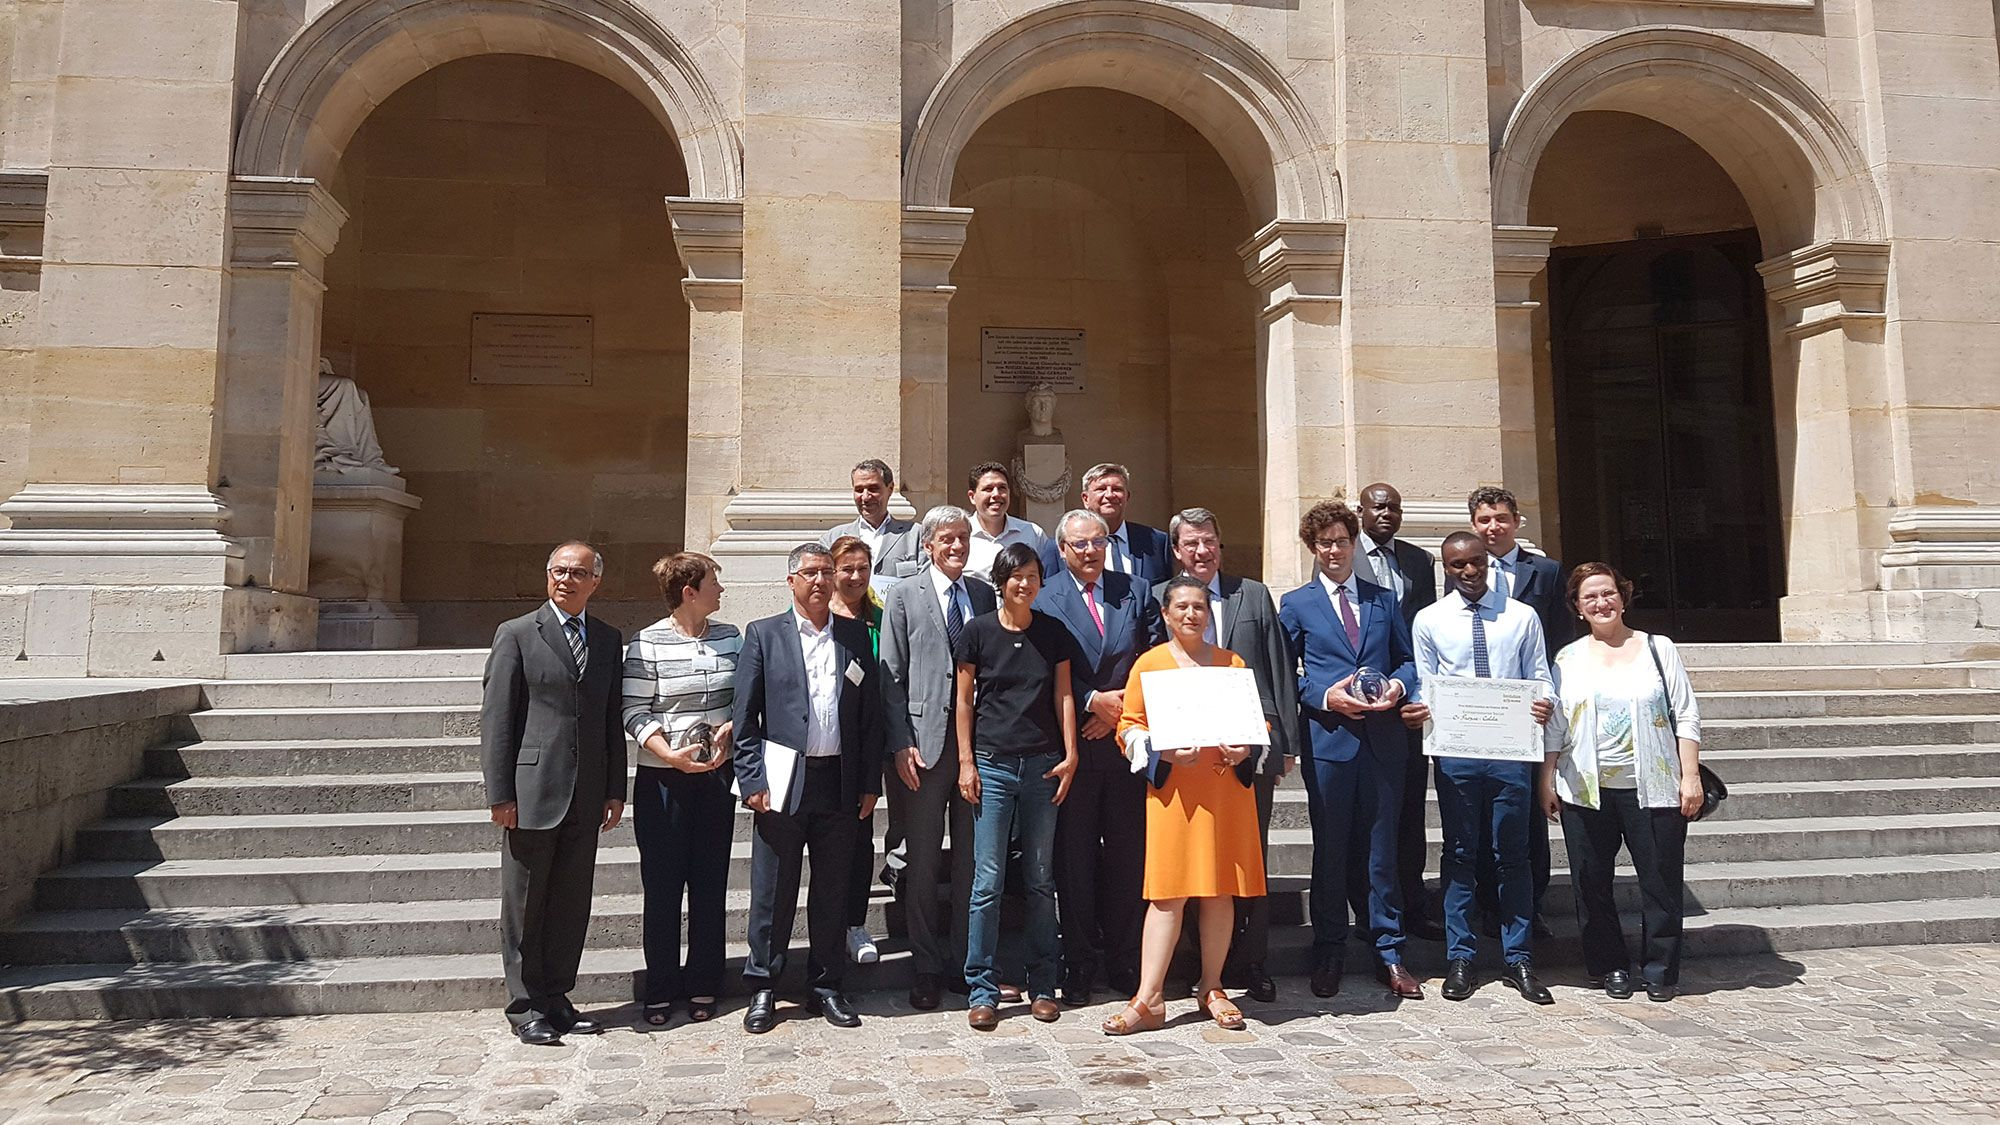 2018 SUEZ Institut de France awards